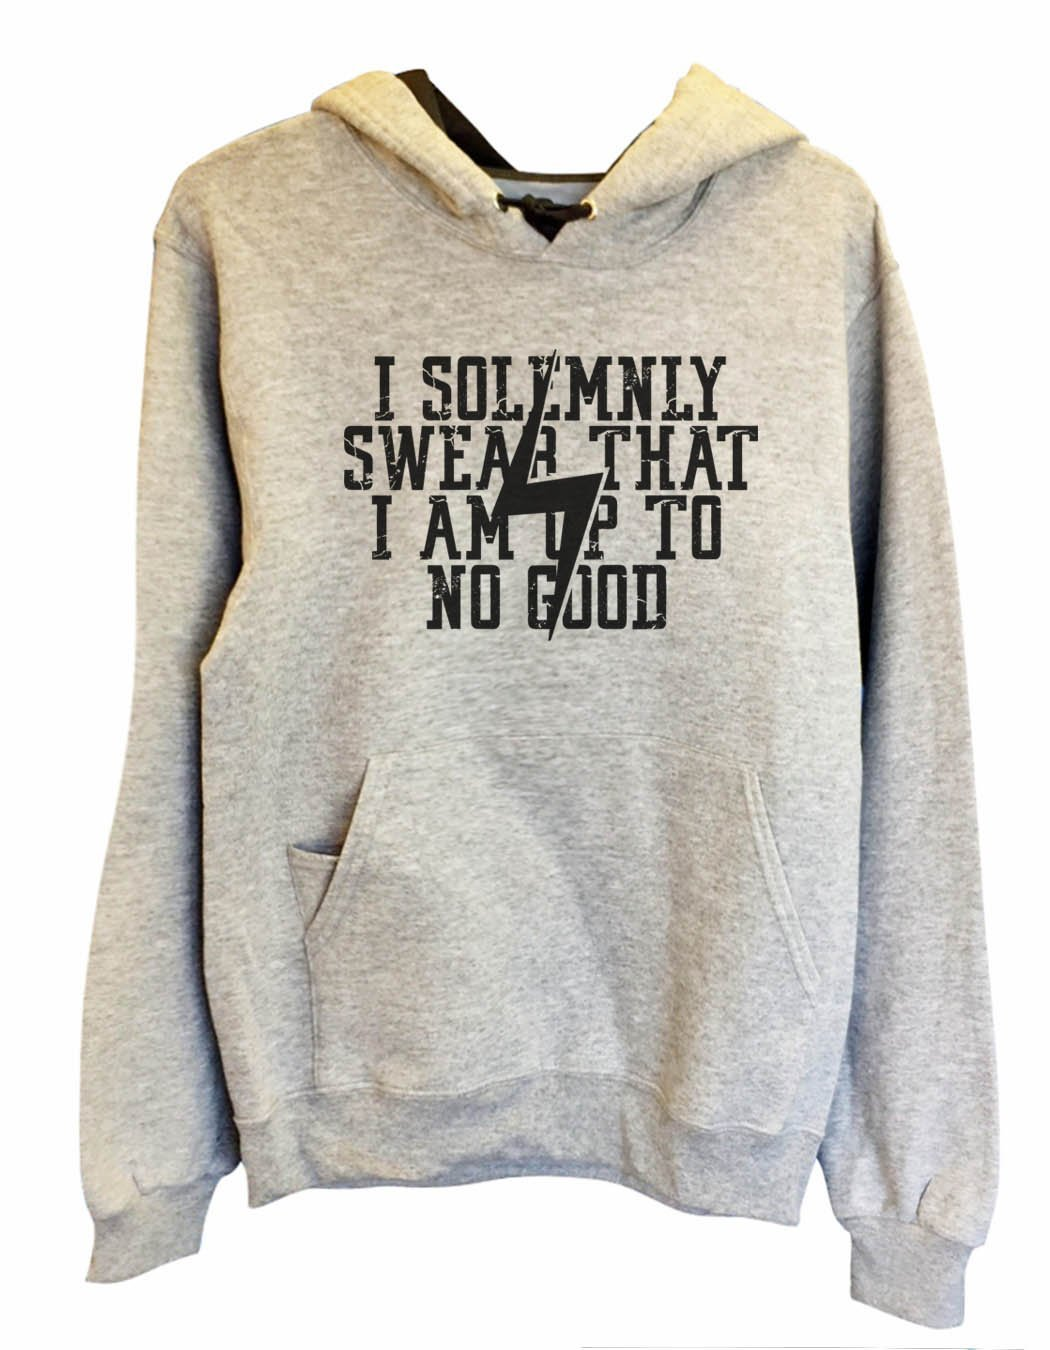 UNISEX HOODIE - I Solemnly Swear That I Am Up To No Good - FUNNY MENS AND WOMENS HOODED SWEATSHIRTS - 2136 Funny Shirt Small / Heather Grey